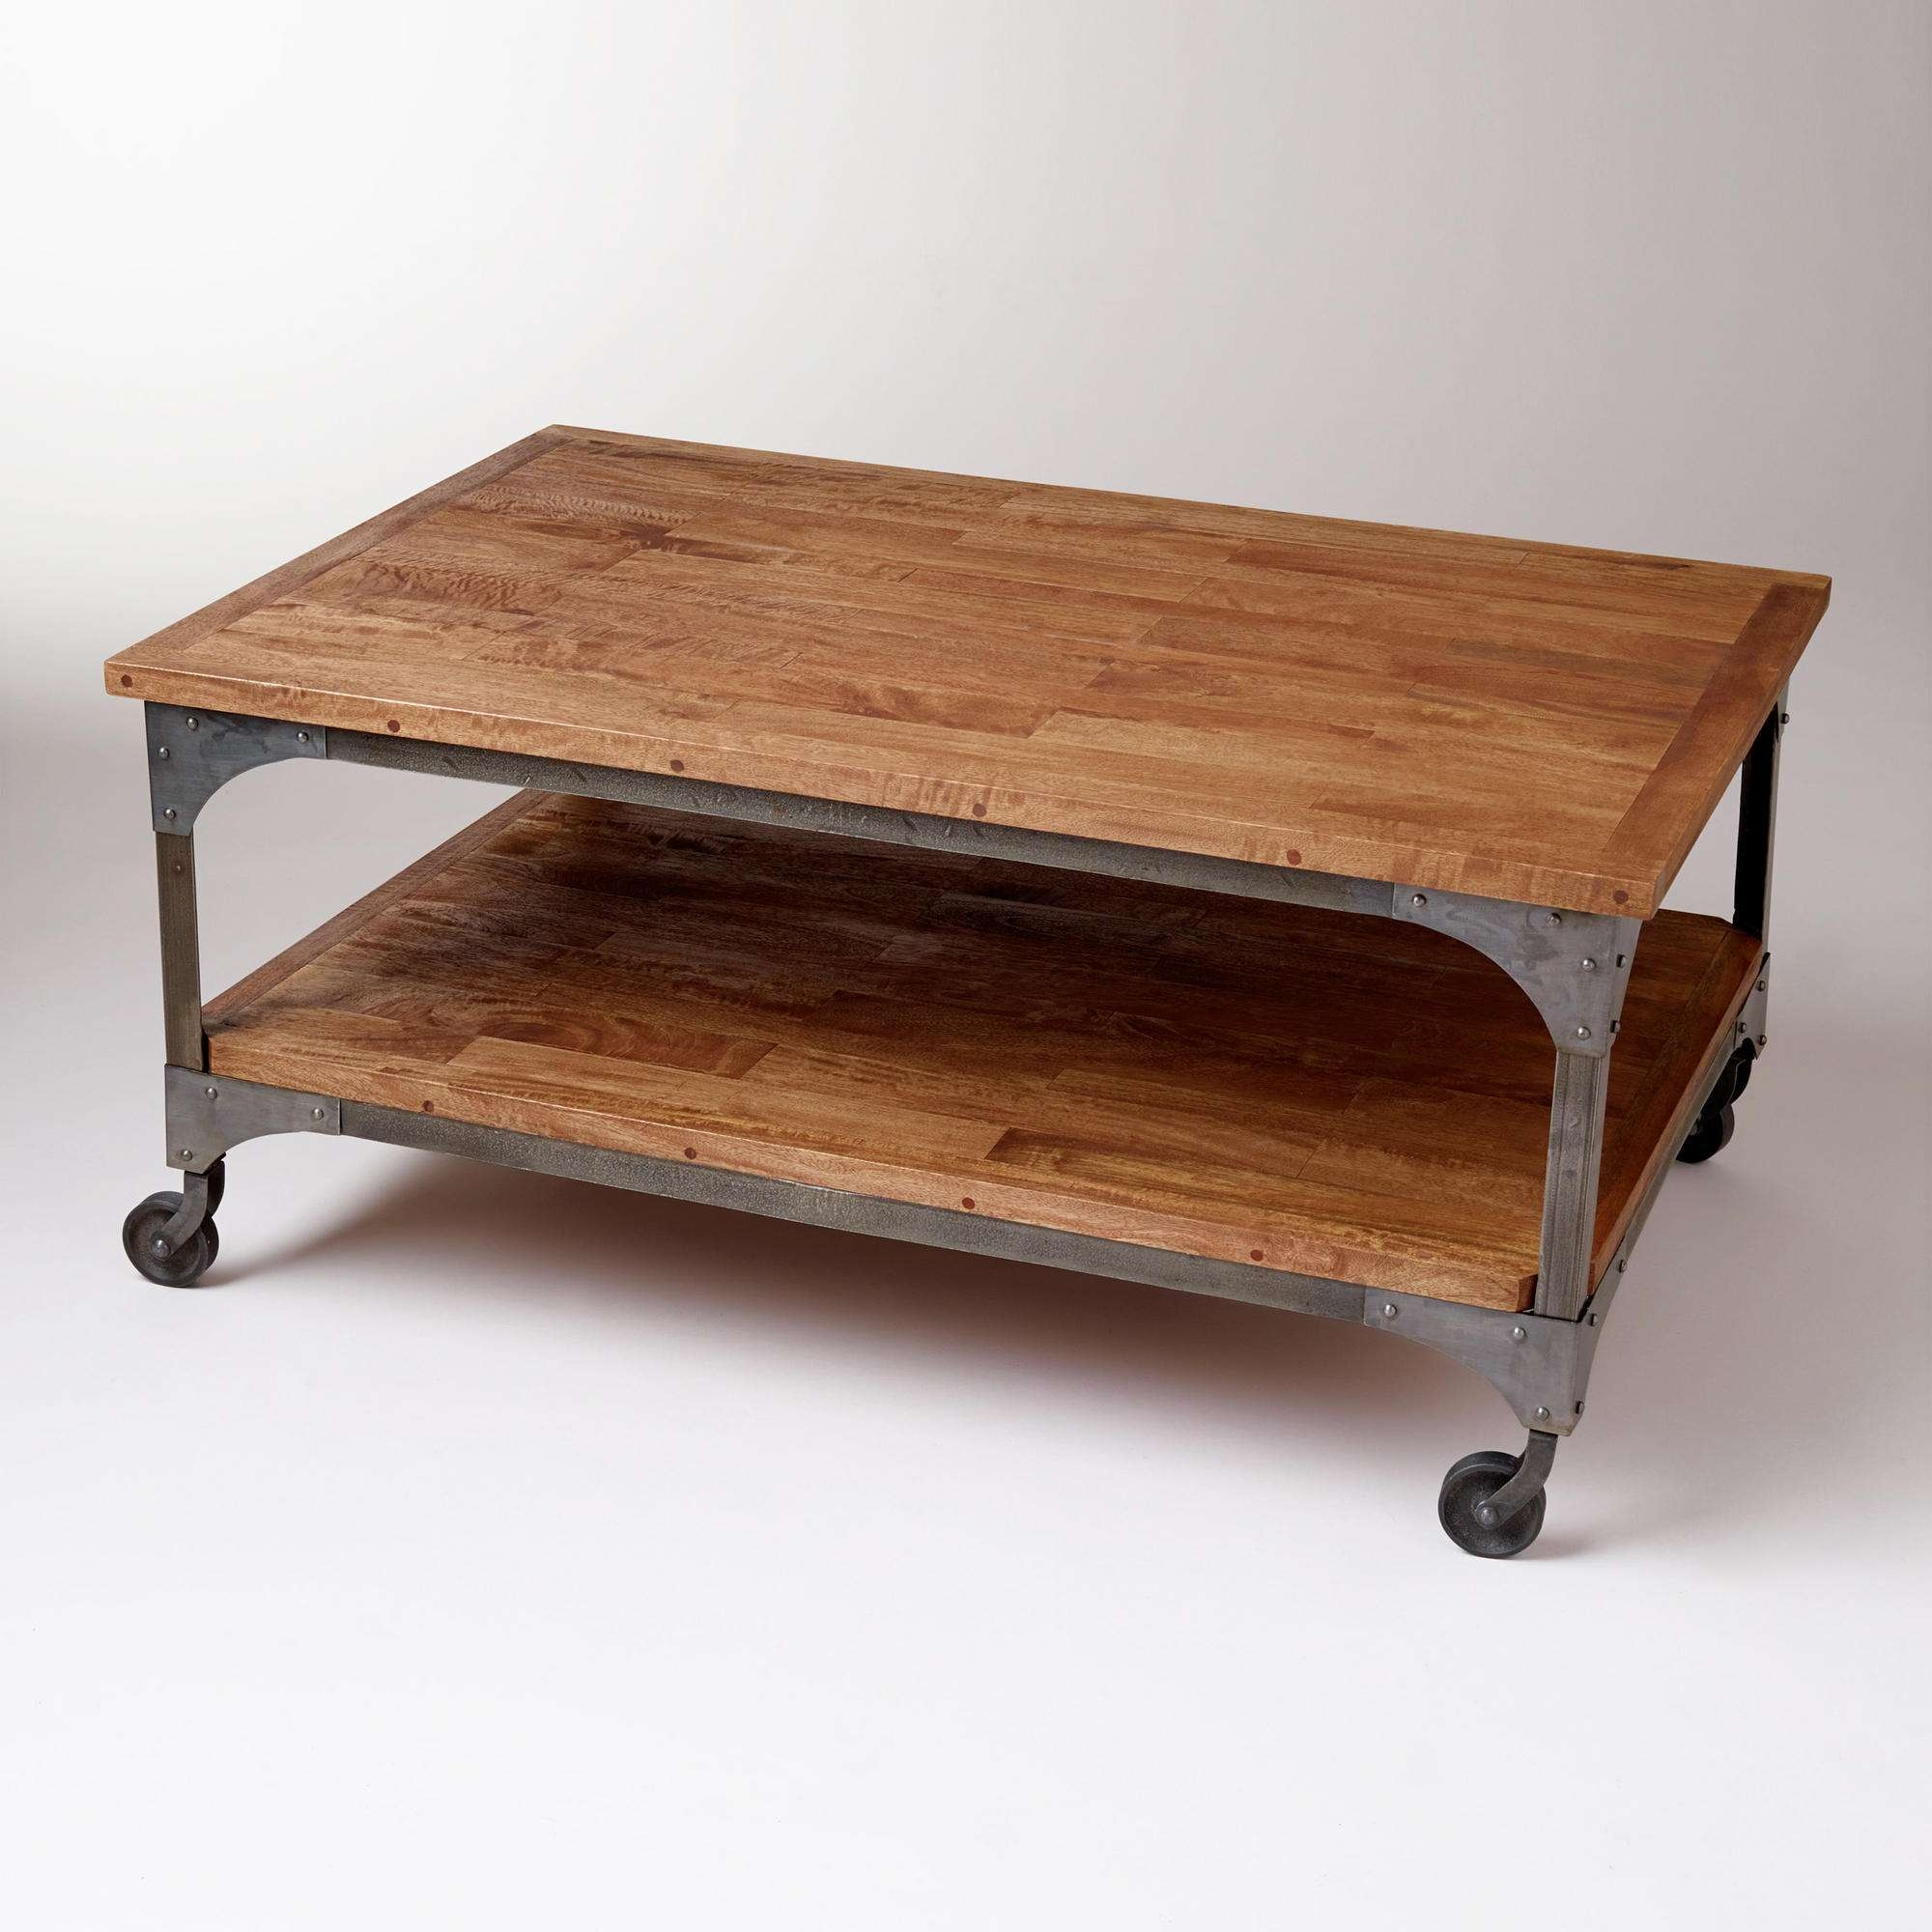 Popular Cheap Wood Coffee Tables Pertaining To Coffee Table: Wonderful Cheap Wood Coffee Table Big Lots Coffee (View 14 of 20)